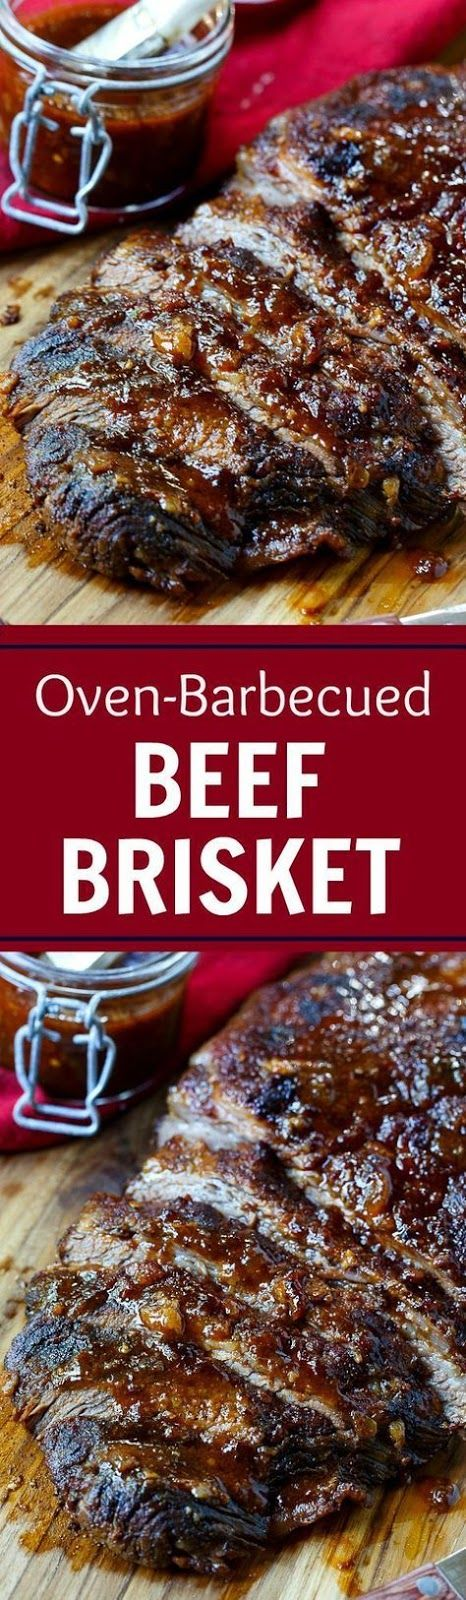 Oven-Barbecued Beef Brisket | Food And Cake Recipes